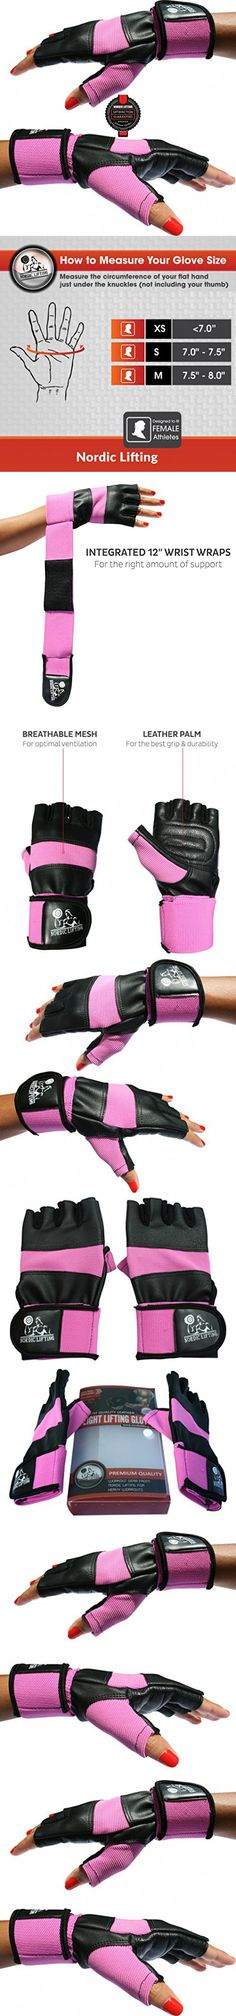 """Weight Lifting Gloves With 12"""" Wrist Support For Gym Workout, CrossFit, Weightlifting, Fitness & Cross Training - The Best For Men & Women - by Nordic Liftingâ""""¢ - (Pink, Small) - 1 Year Warranty"""